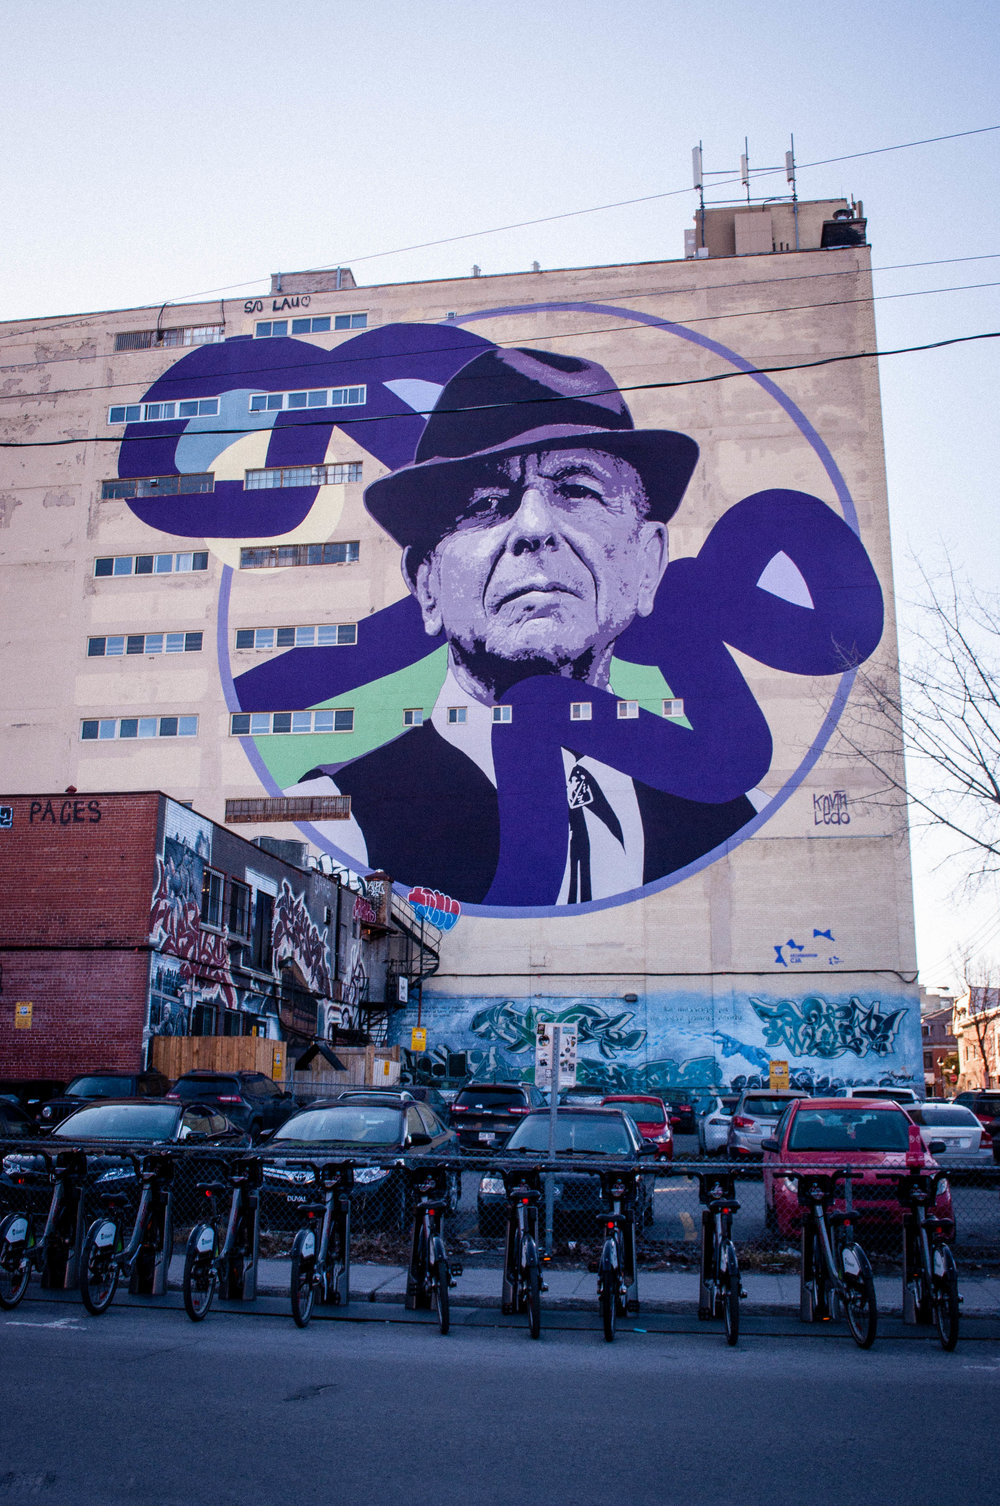 Graffiti on Boulevard Saint-Laurent (Montreal) of Leonard Cohen. Graffiti proposed as the best street art in Montreal